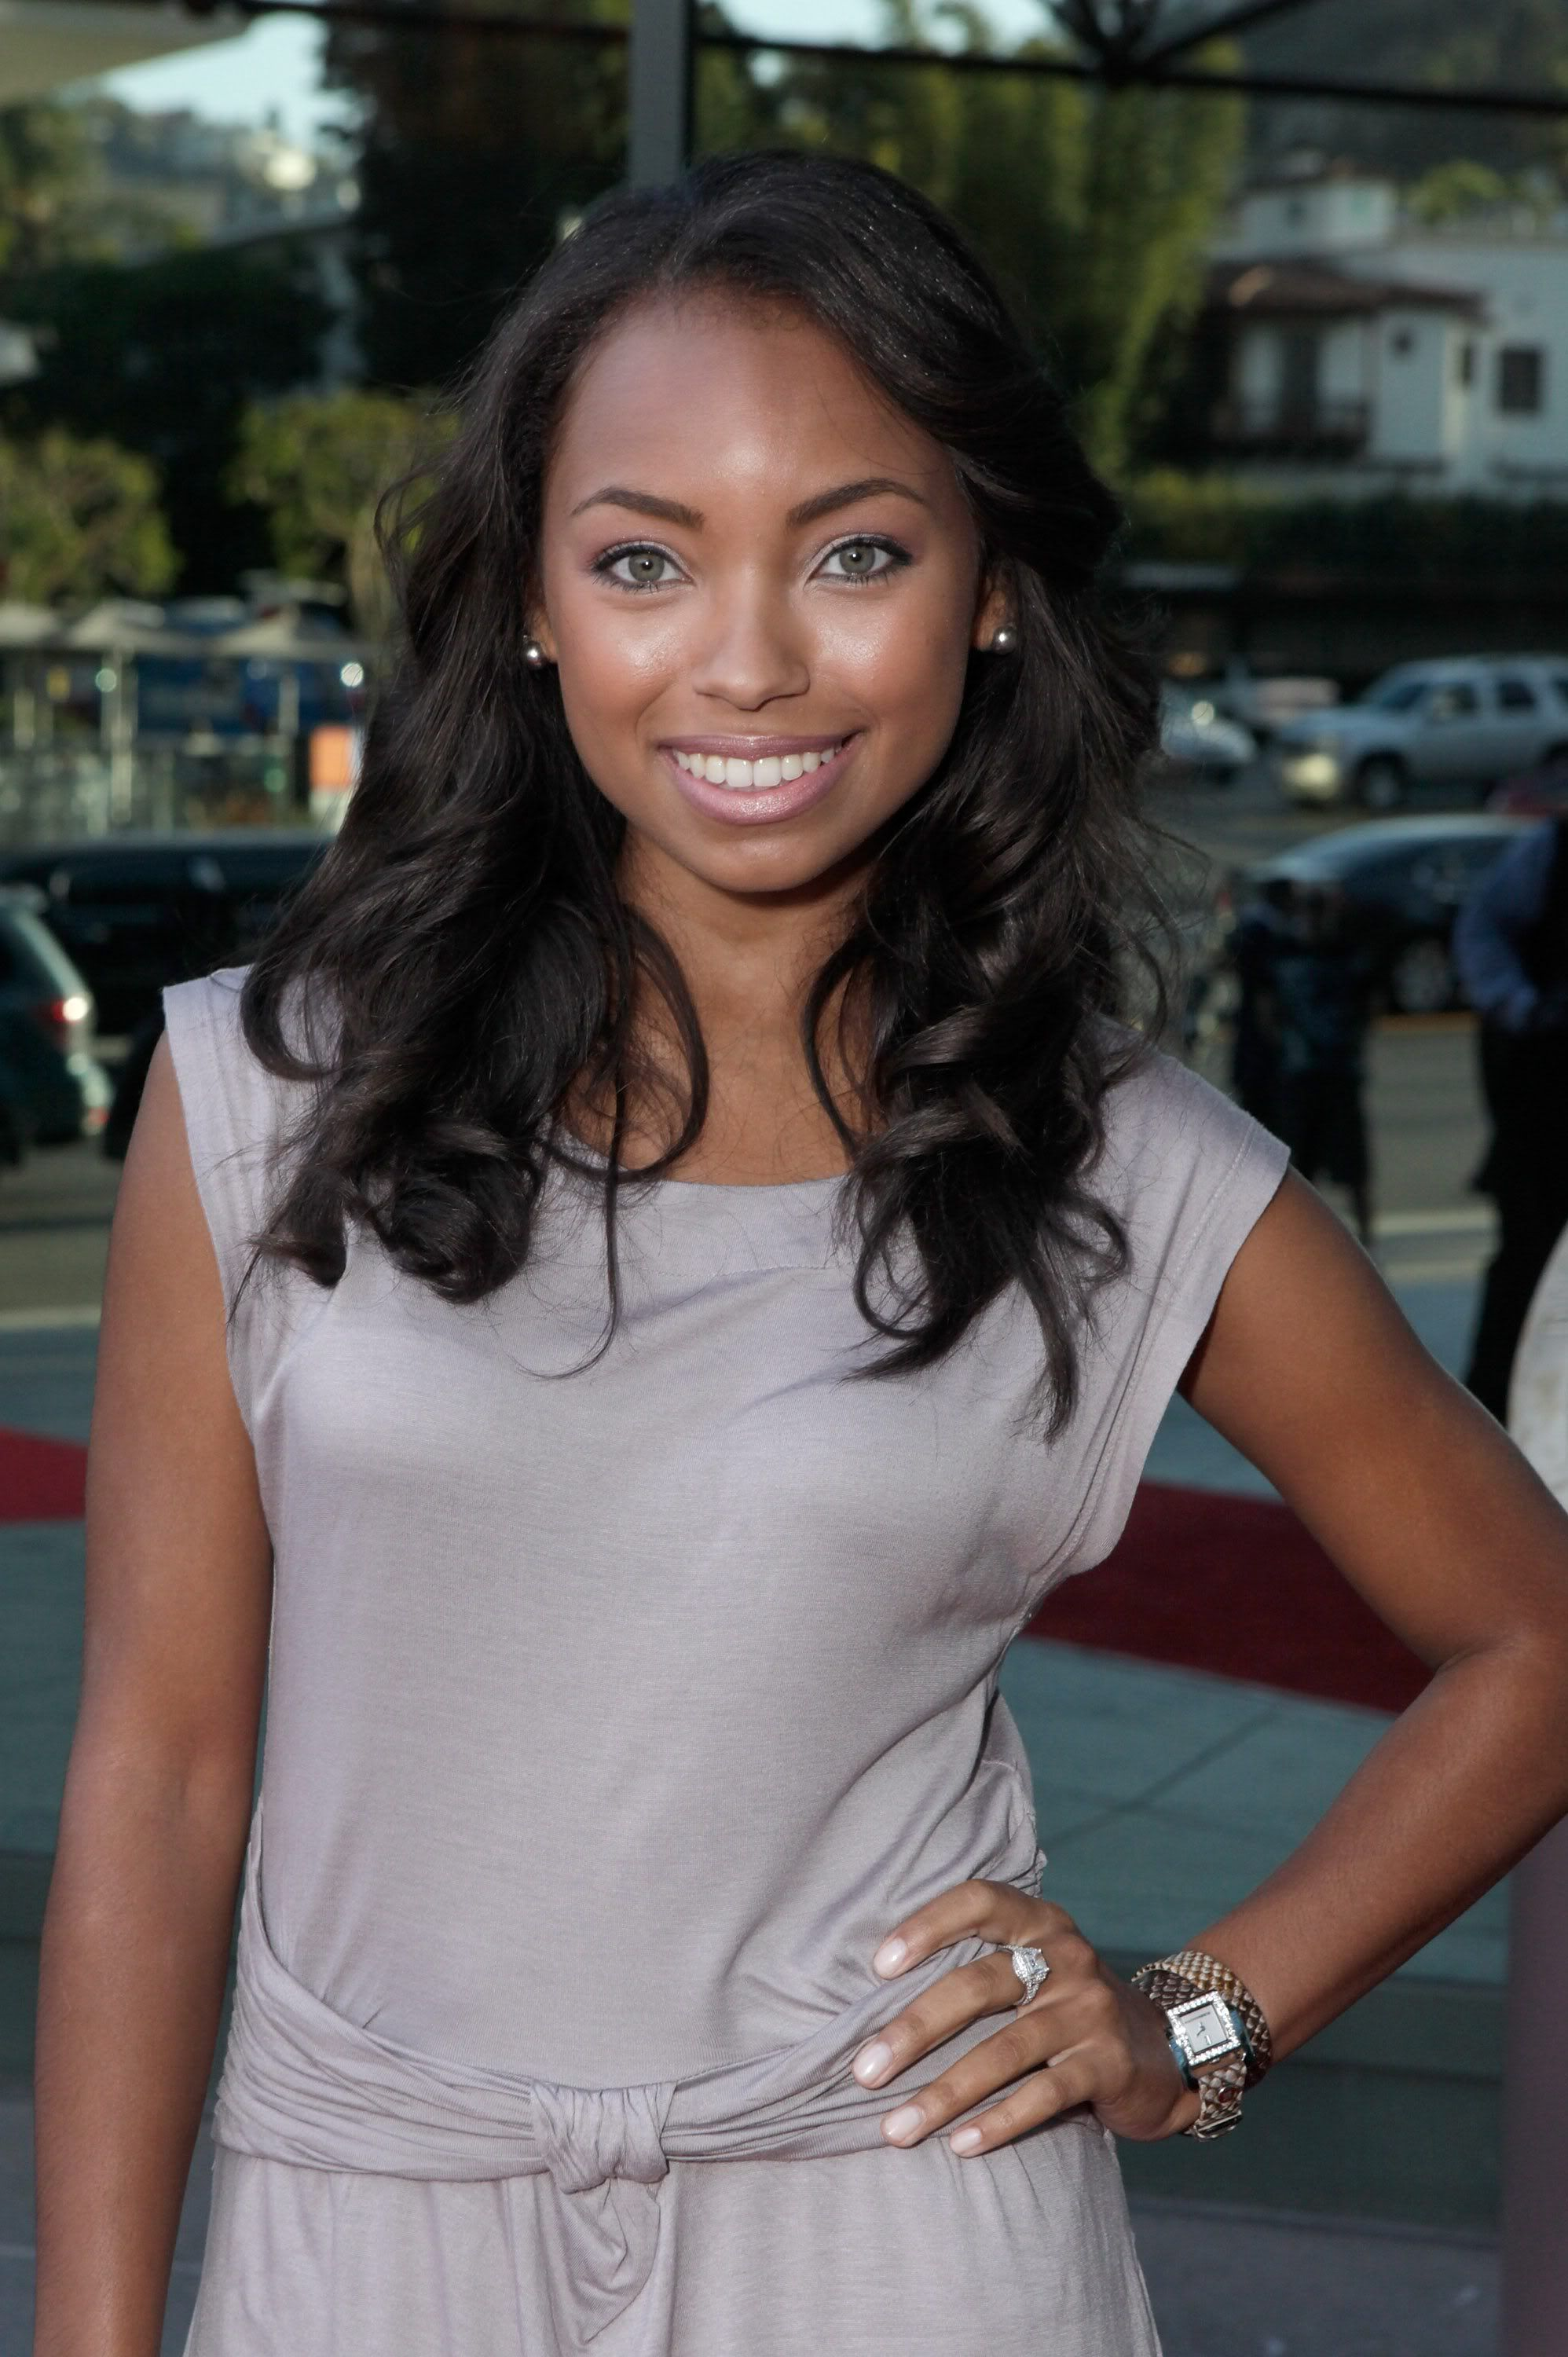 logan browning and kat grahamlogan browning eyes, logan browning weight and height, logan browning eye color, logan browning instagram, logan browning wikipedia, logan browning gif, logan browning husband, logan browning listal, logan browning, logan browning boyfriend, logan browning hit the floor, logan browning twitter, logan browning and kat graham, logan browning tumblr, logan browning facebook, logan browning married, logan browning feet, logan browning net worth, logan browning ethnicity, logan browning bio